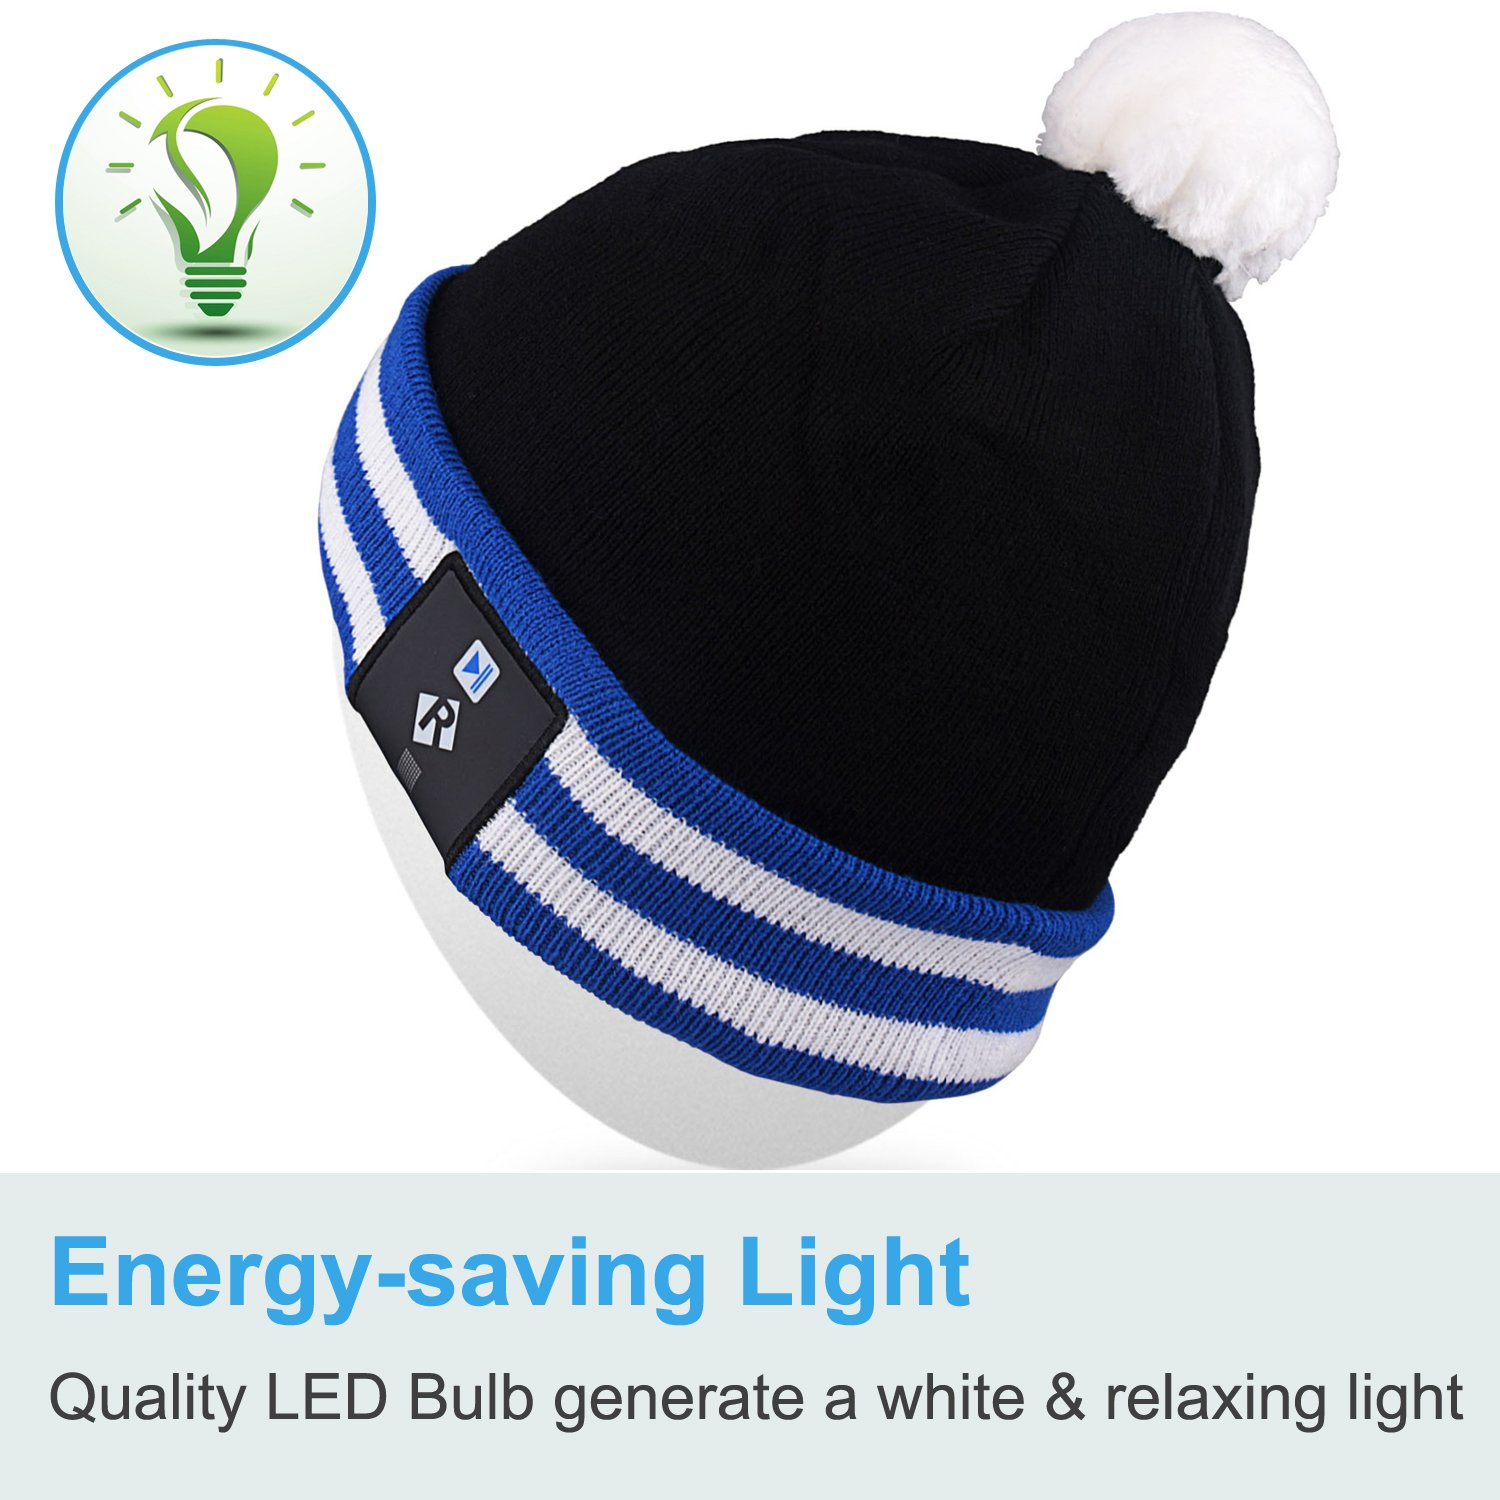 Rotibox Stylish LED Light Up Beanie Hat Knit Cap Best Presents for Unisex Men Women Indoor and Outdoor Bar Festival Holiday Christmas Gifts Celebration Parties